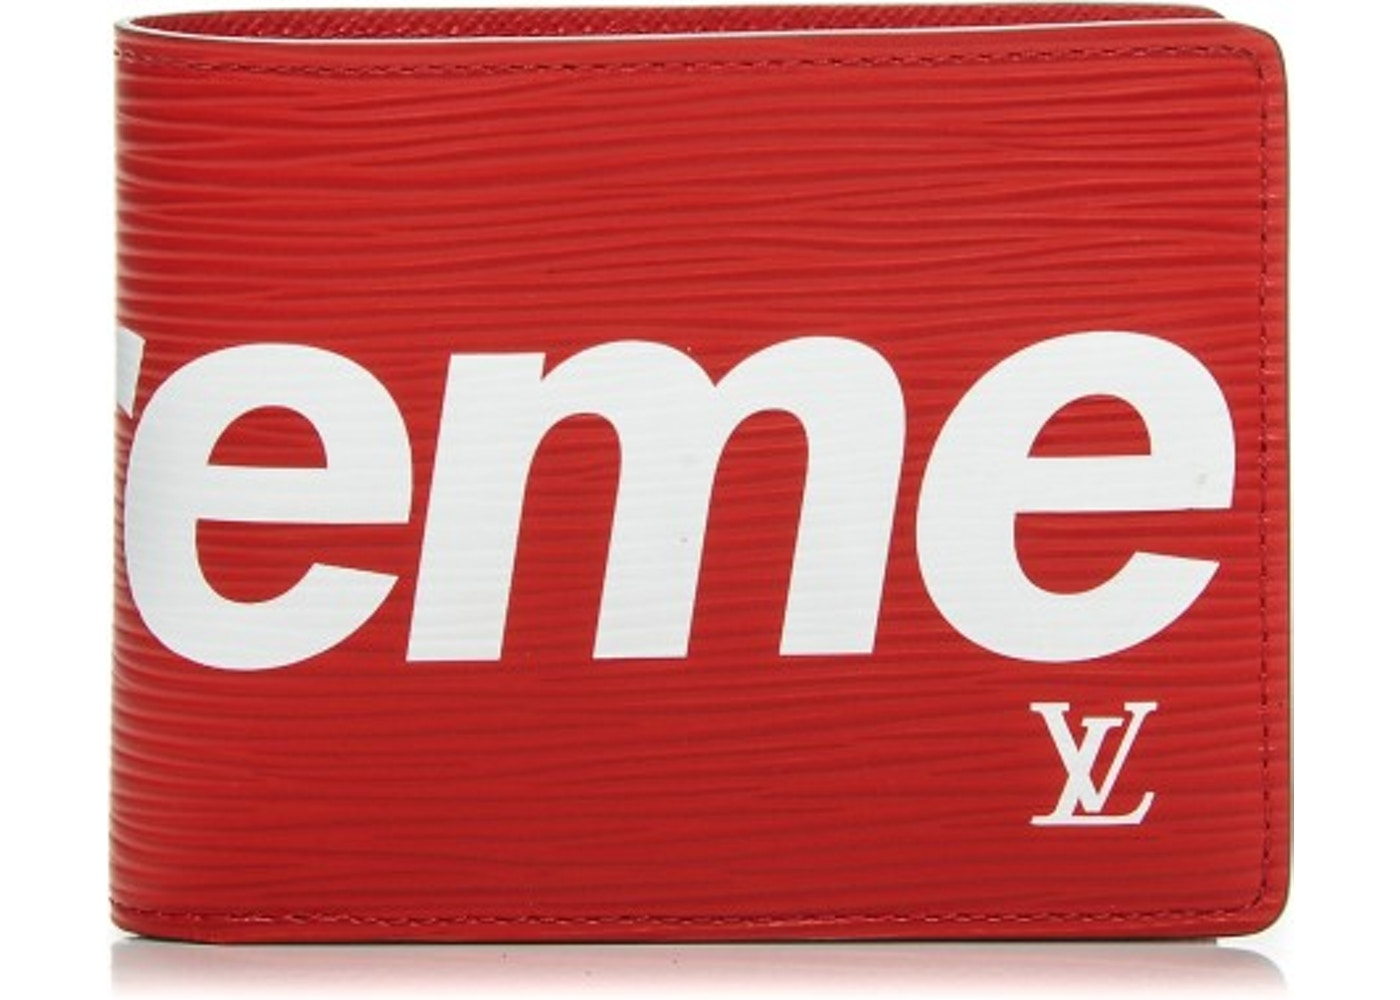 96ae9dd3b869 Louis Vuitton x Supreme Slender Wallet Epi Red. Epi Red